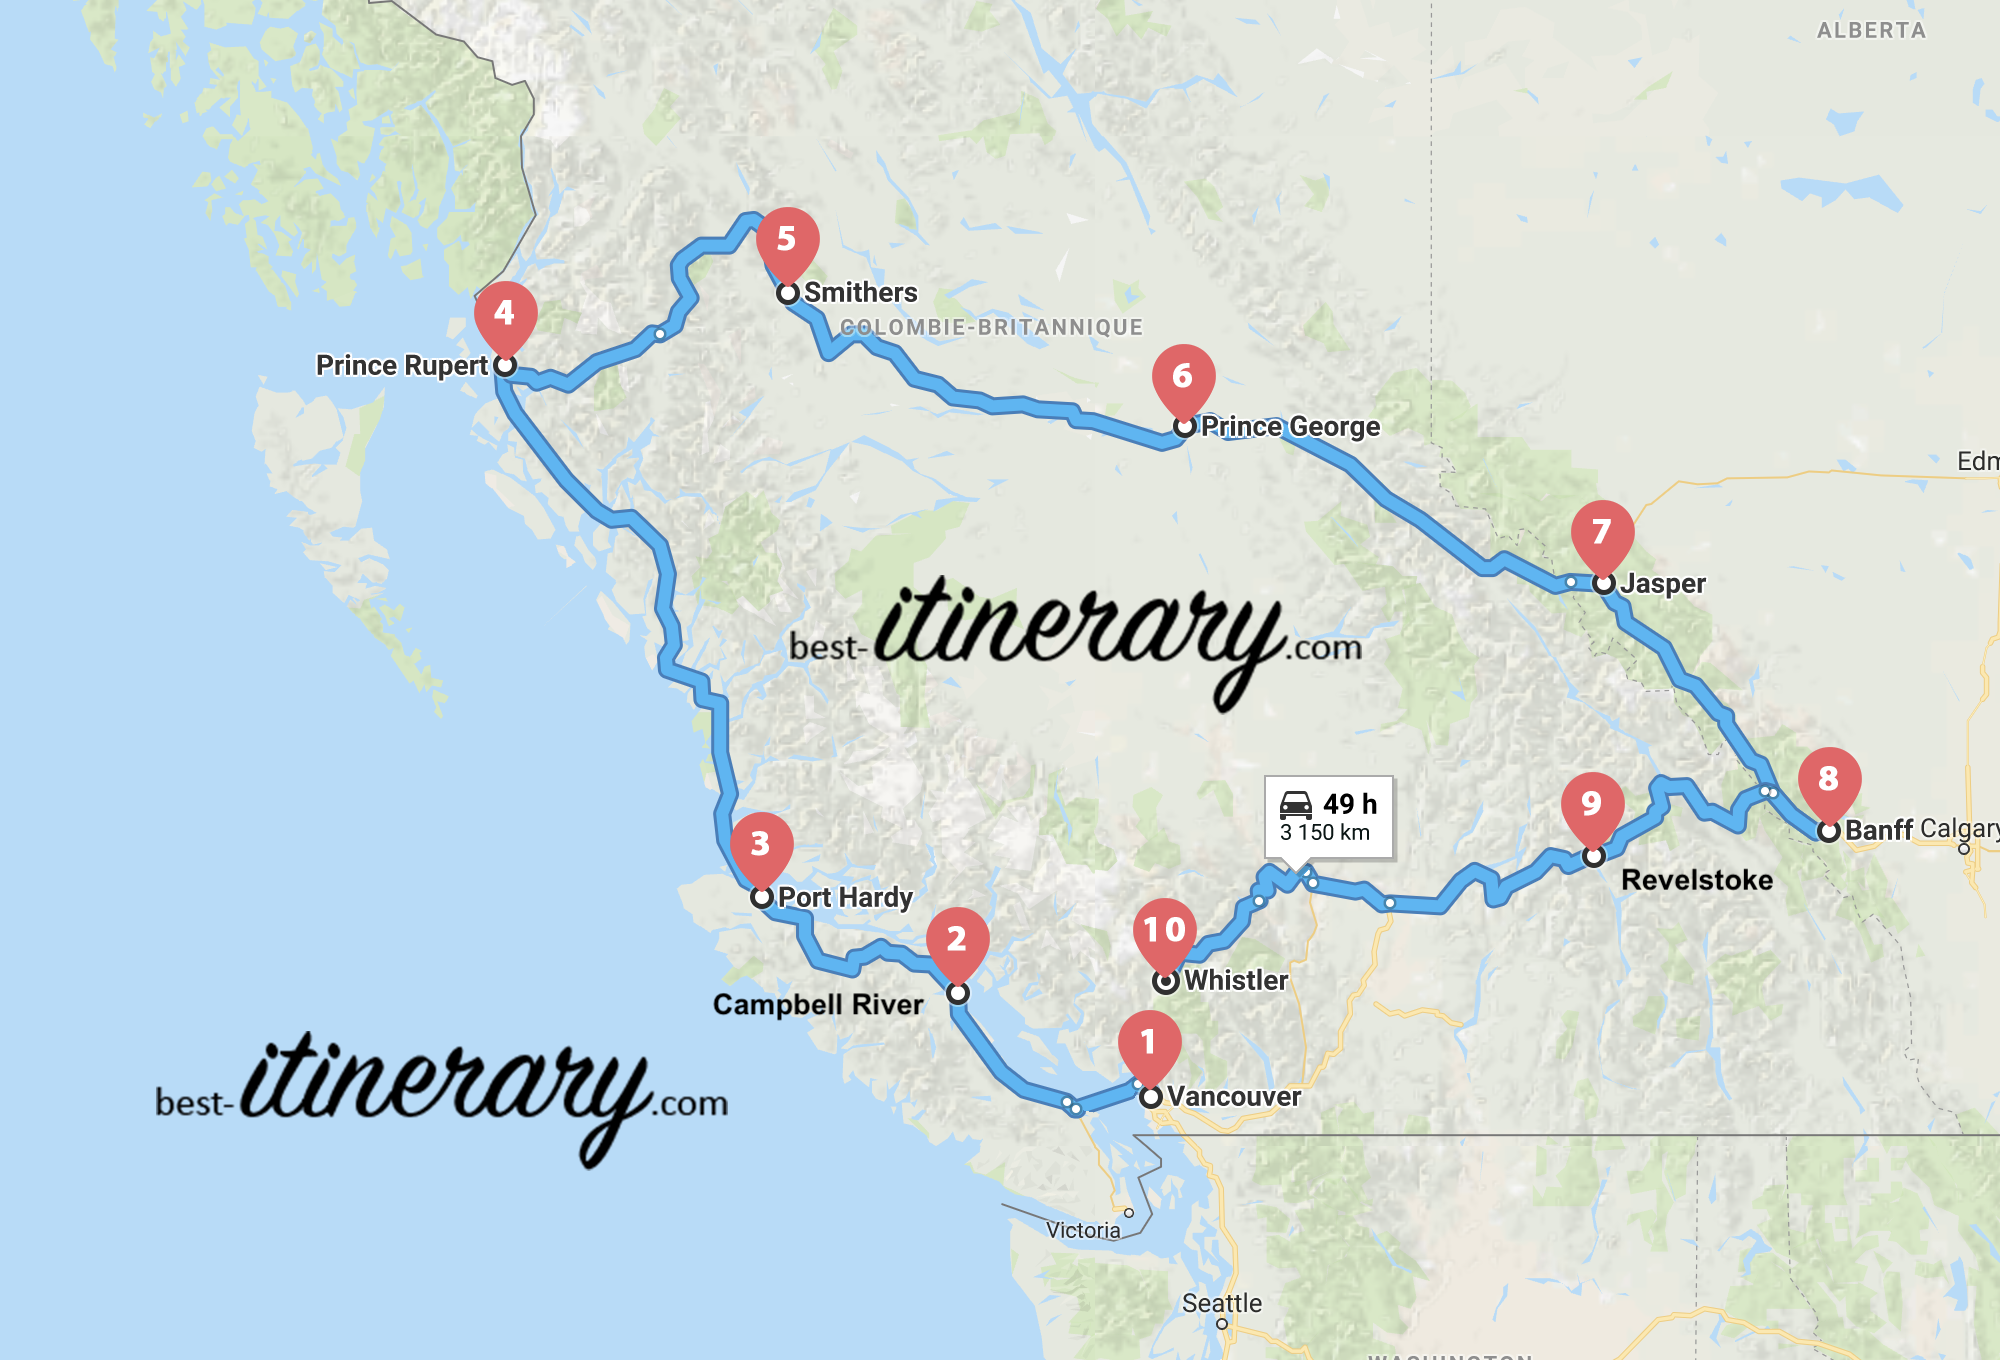 Carte West Canada.3 Weeks In Western Canada Best Itinerary